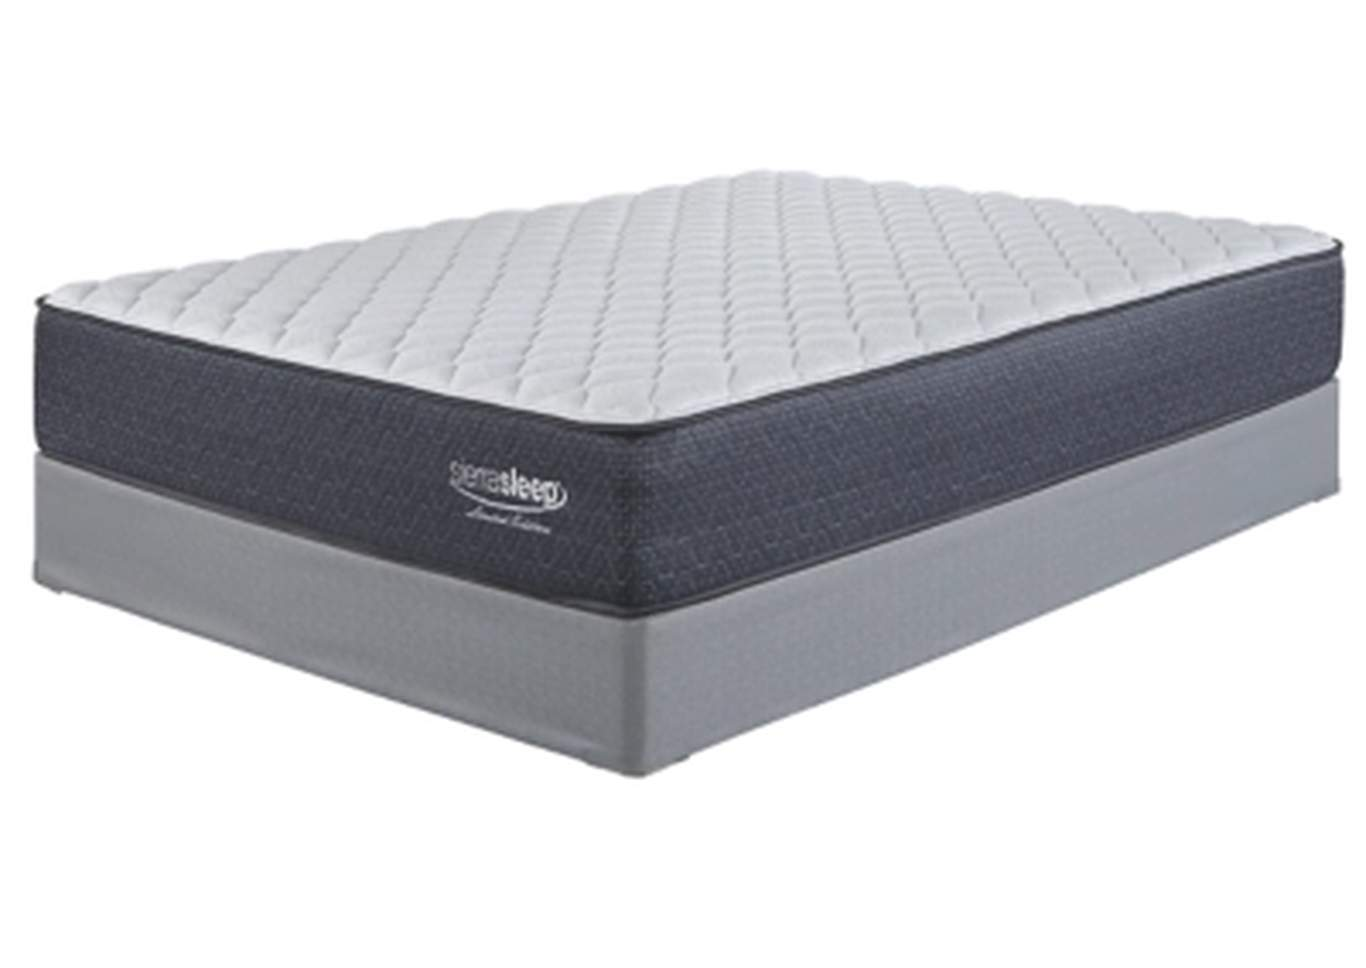 Limited Edition Firm White King Mattress,Sierra Sleep by Ashley